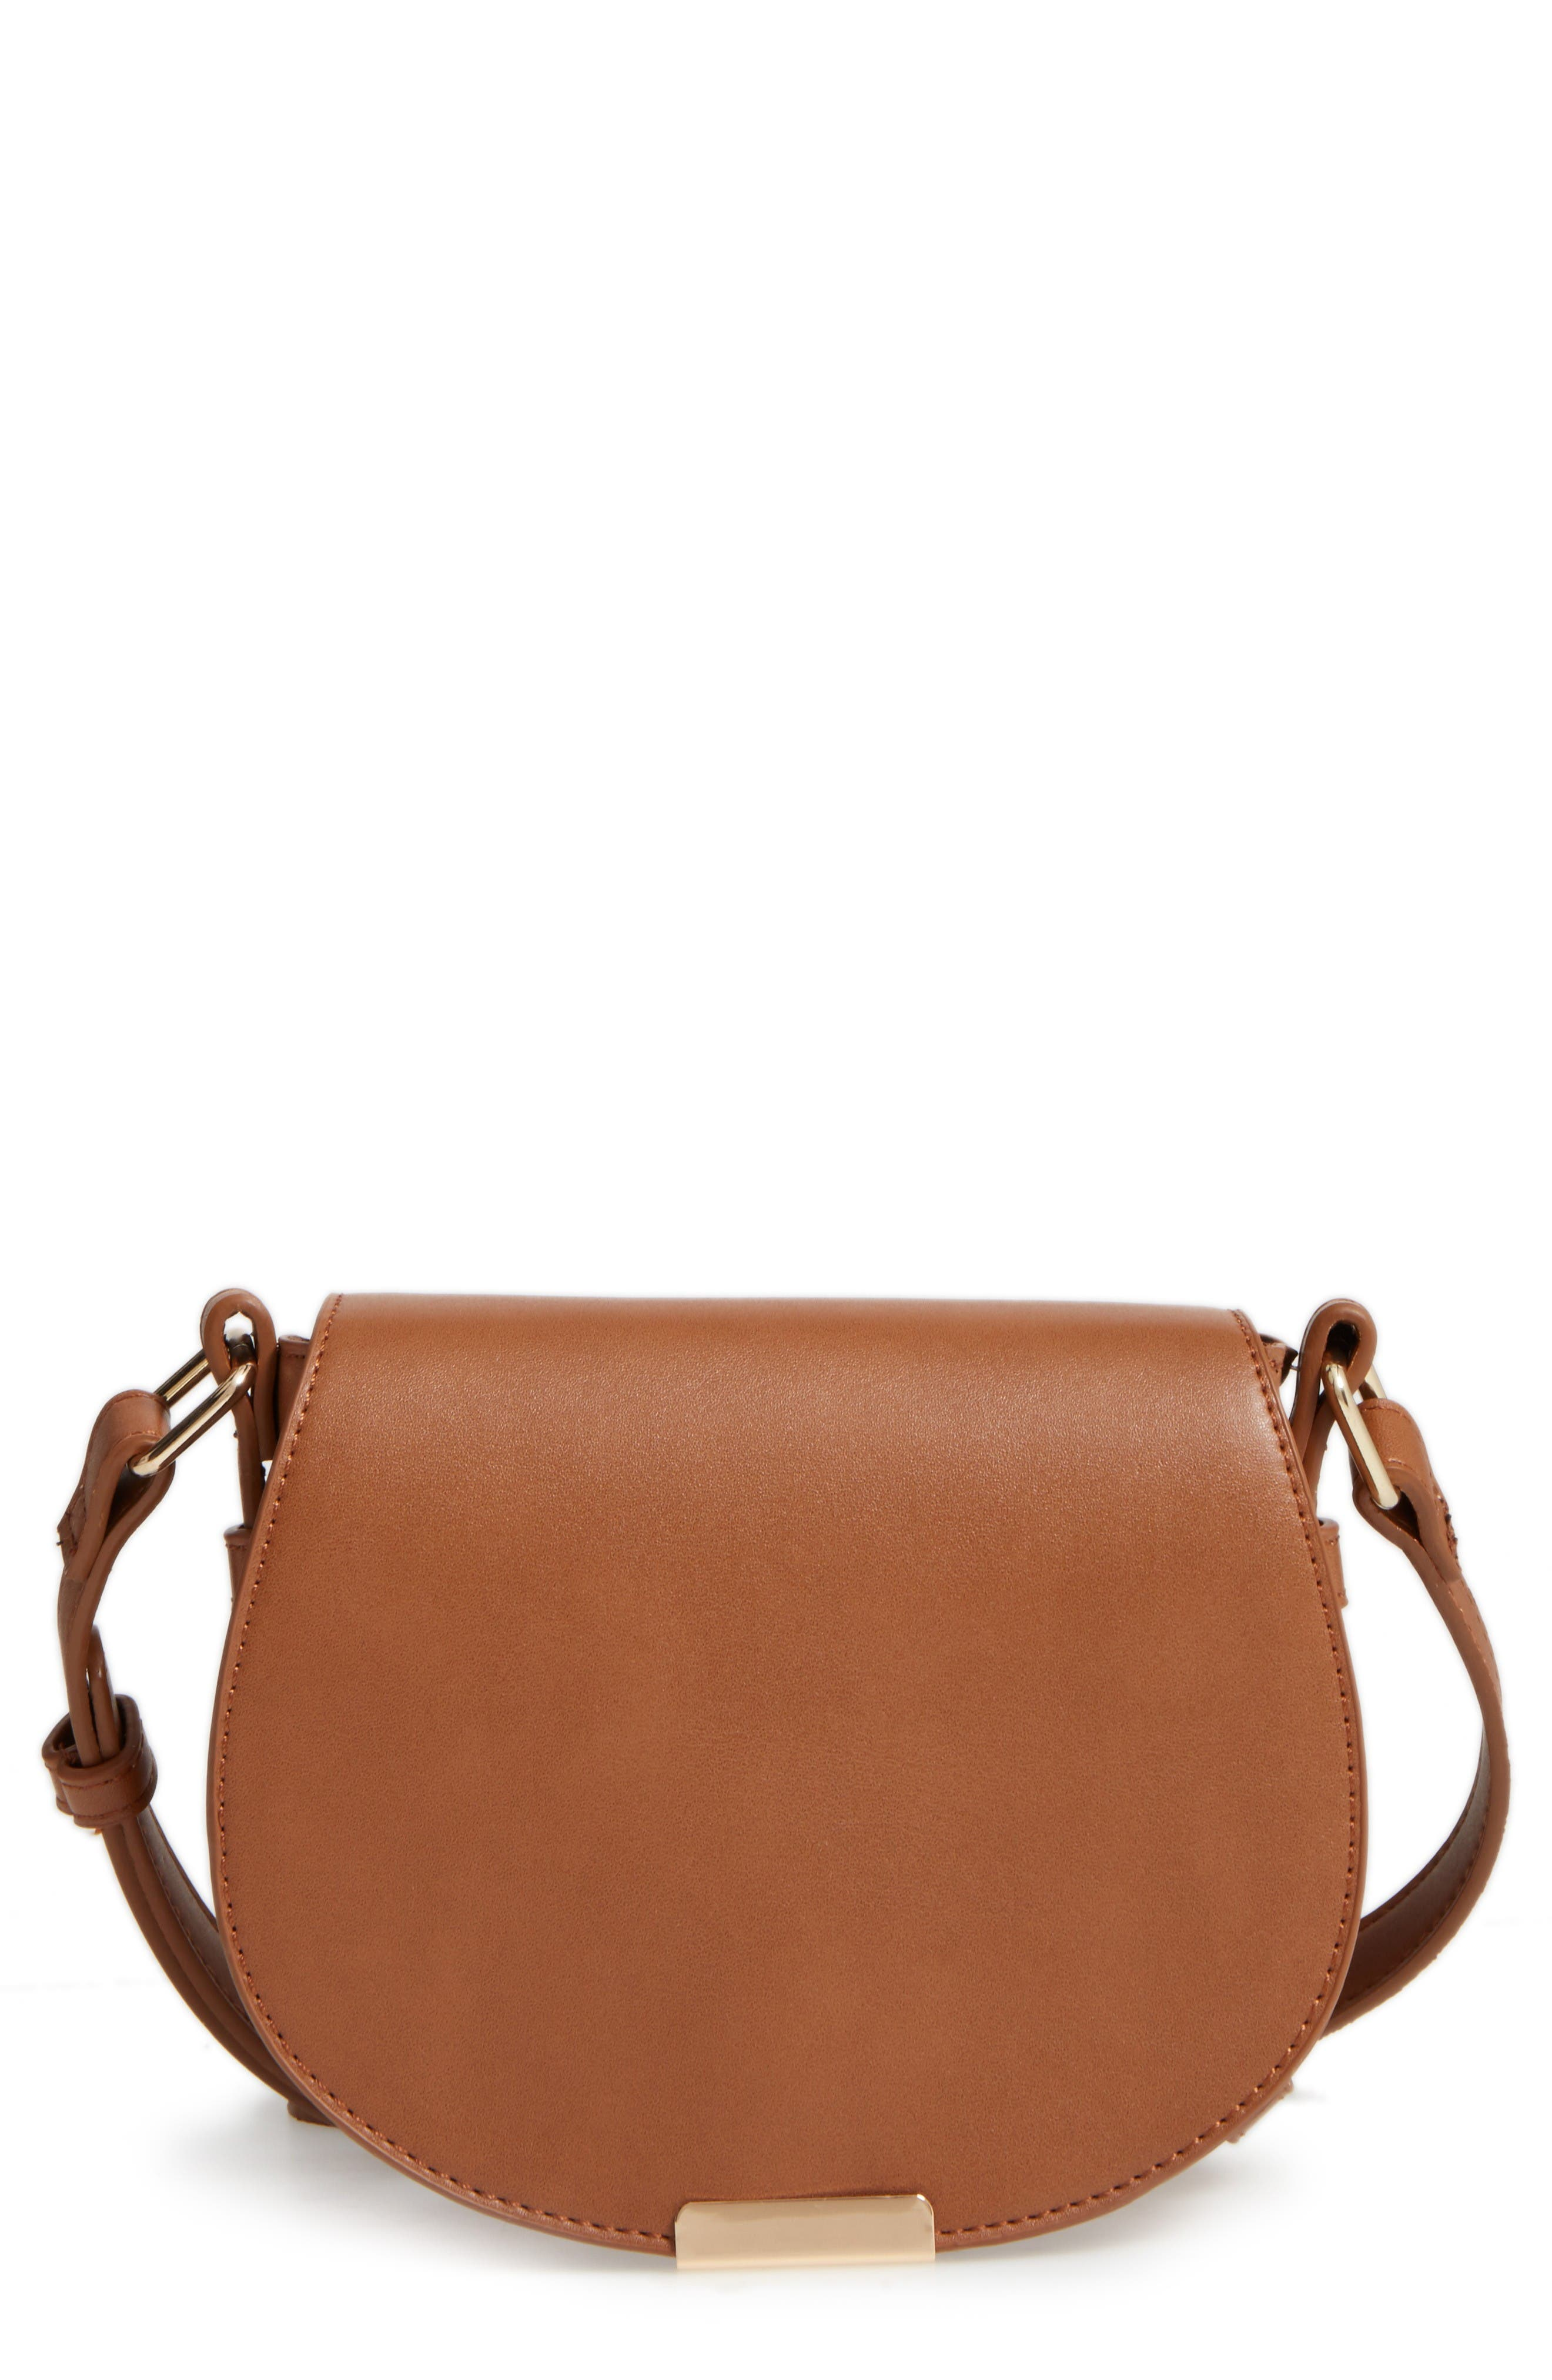 Main Image - BP. Faux Leather Small Saddle Crossbody Bag